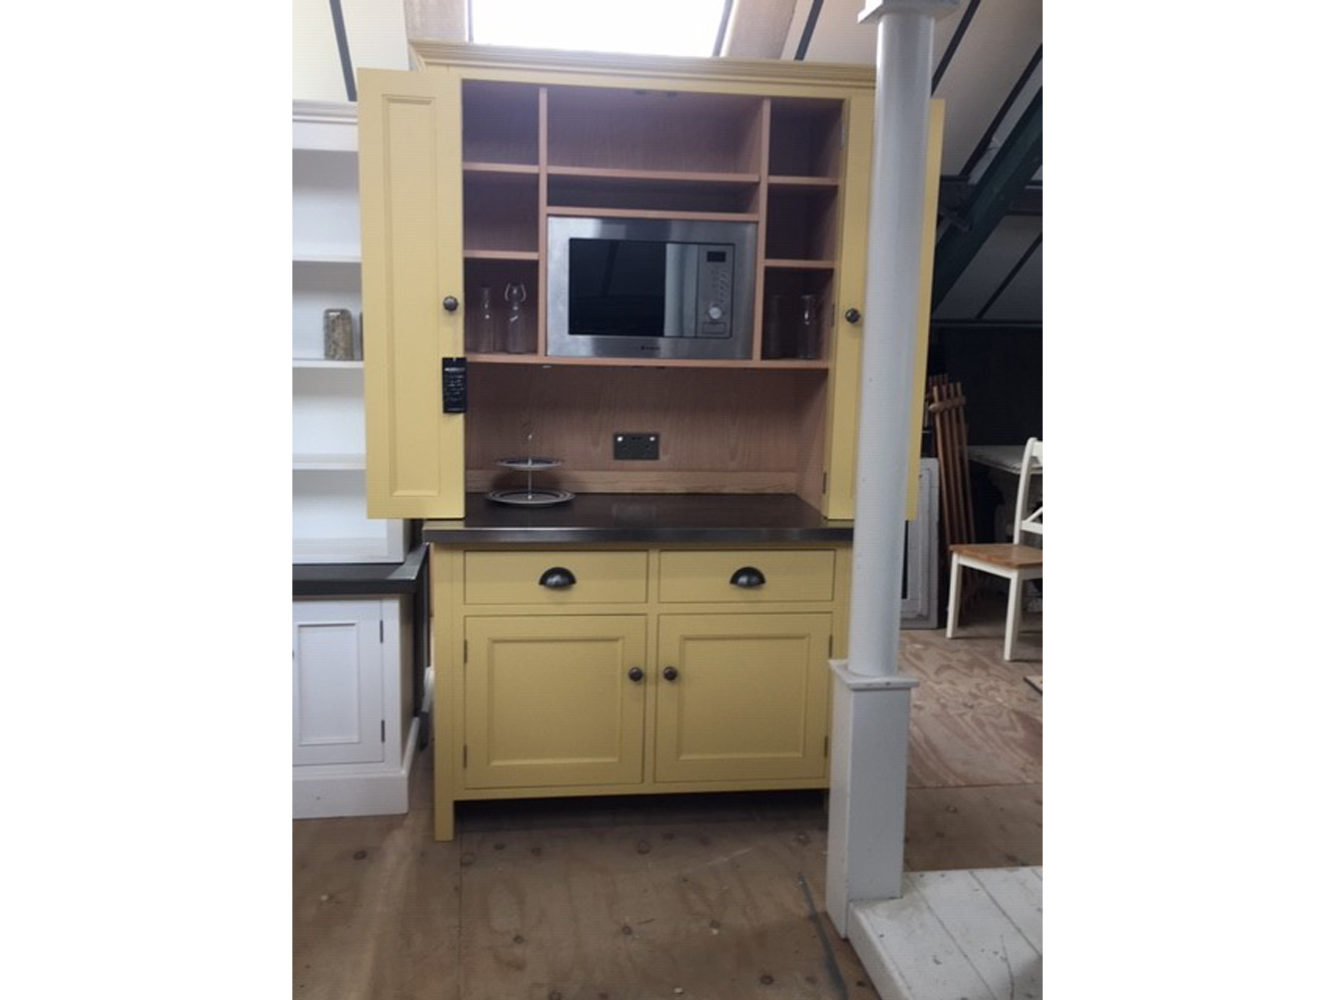 Bi-Fold Larder Cupboard in the Mudd & Co factory sale 2020. Handcrafted kitchen and home furniture